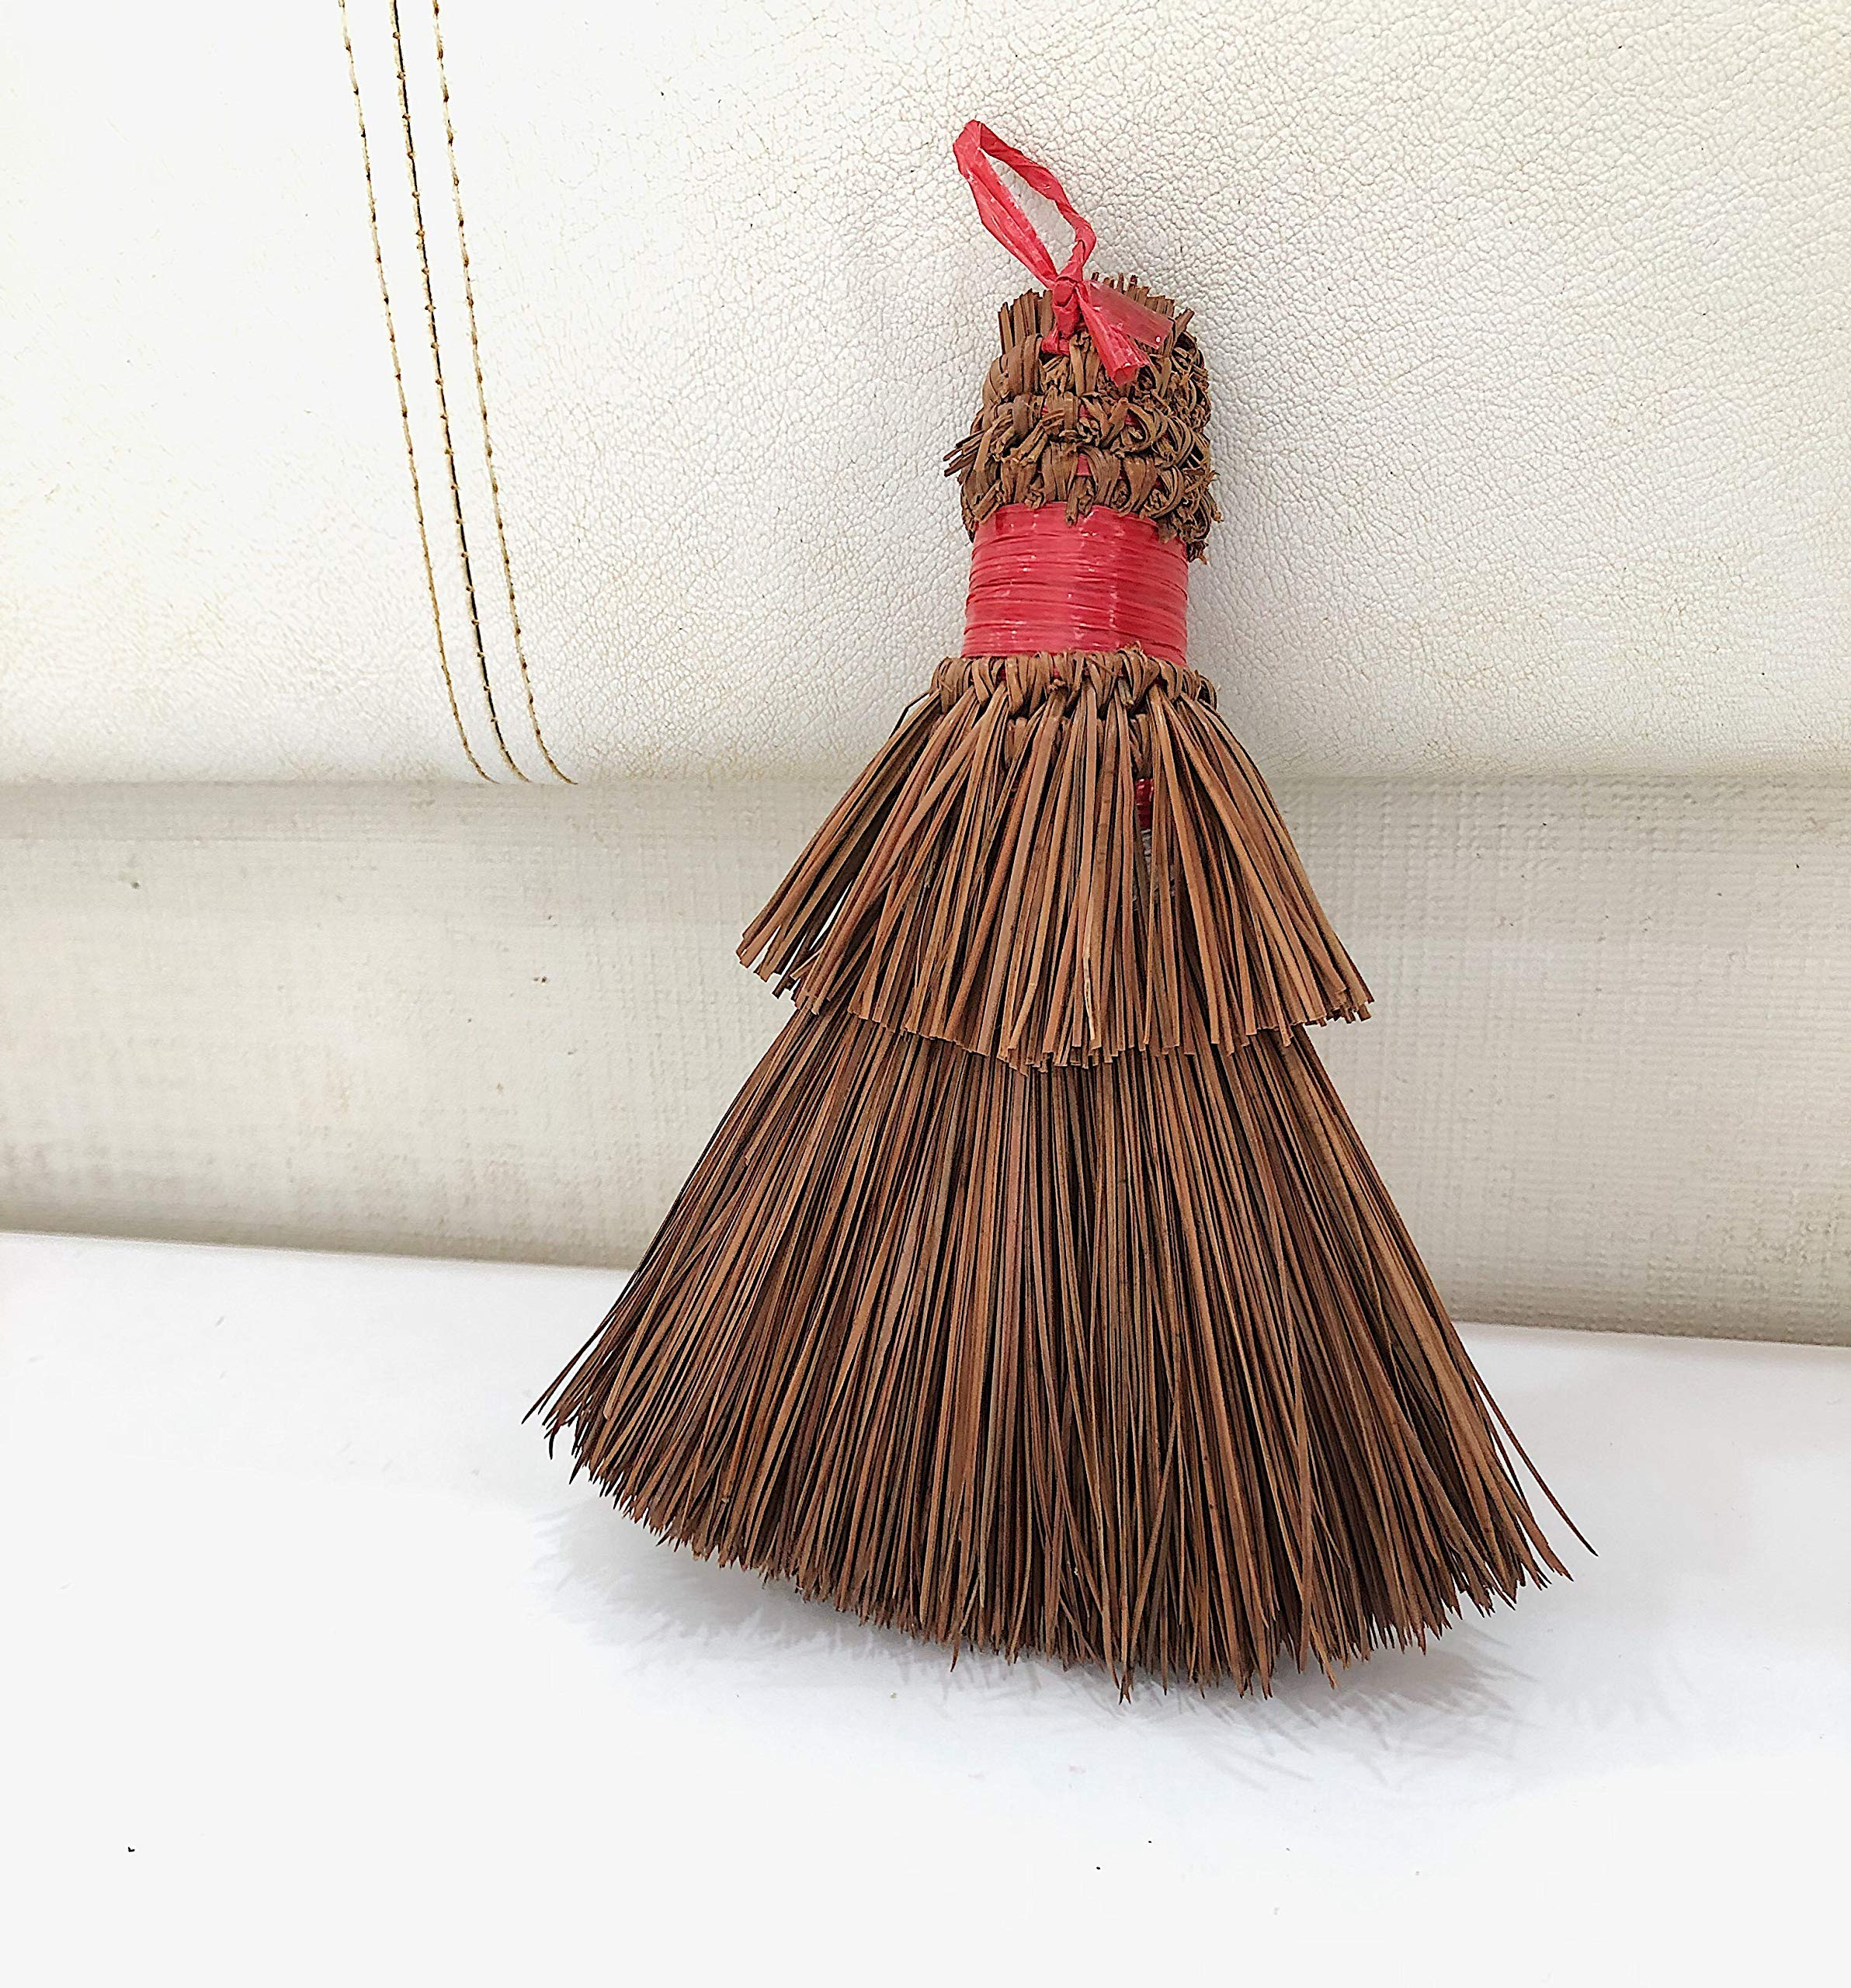 natufi Whisk Brush - Red tie, 100% Pine Handmade, 8 Inch, Easily Cleans Car Mats and Table Dinner